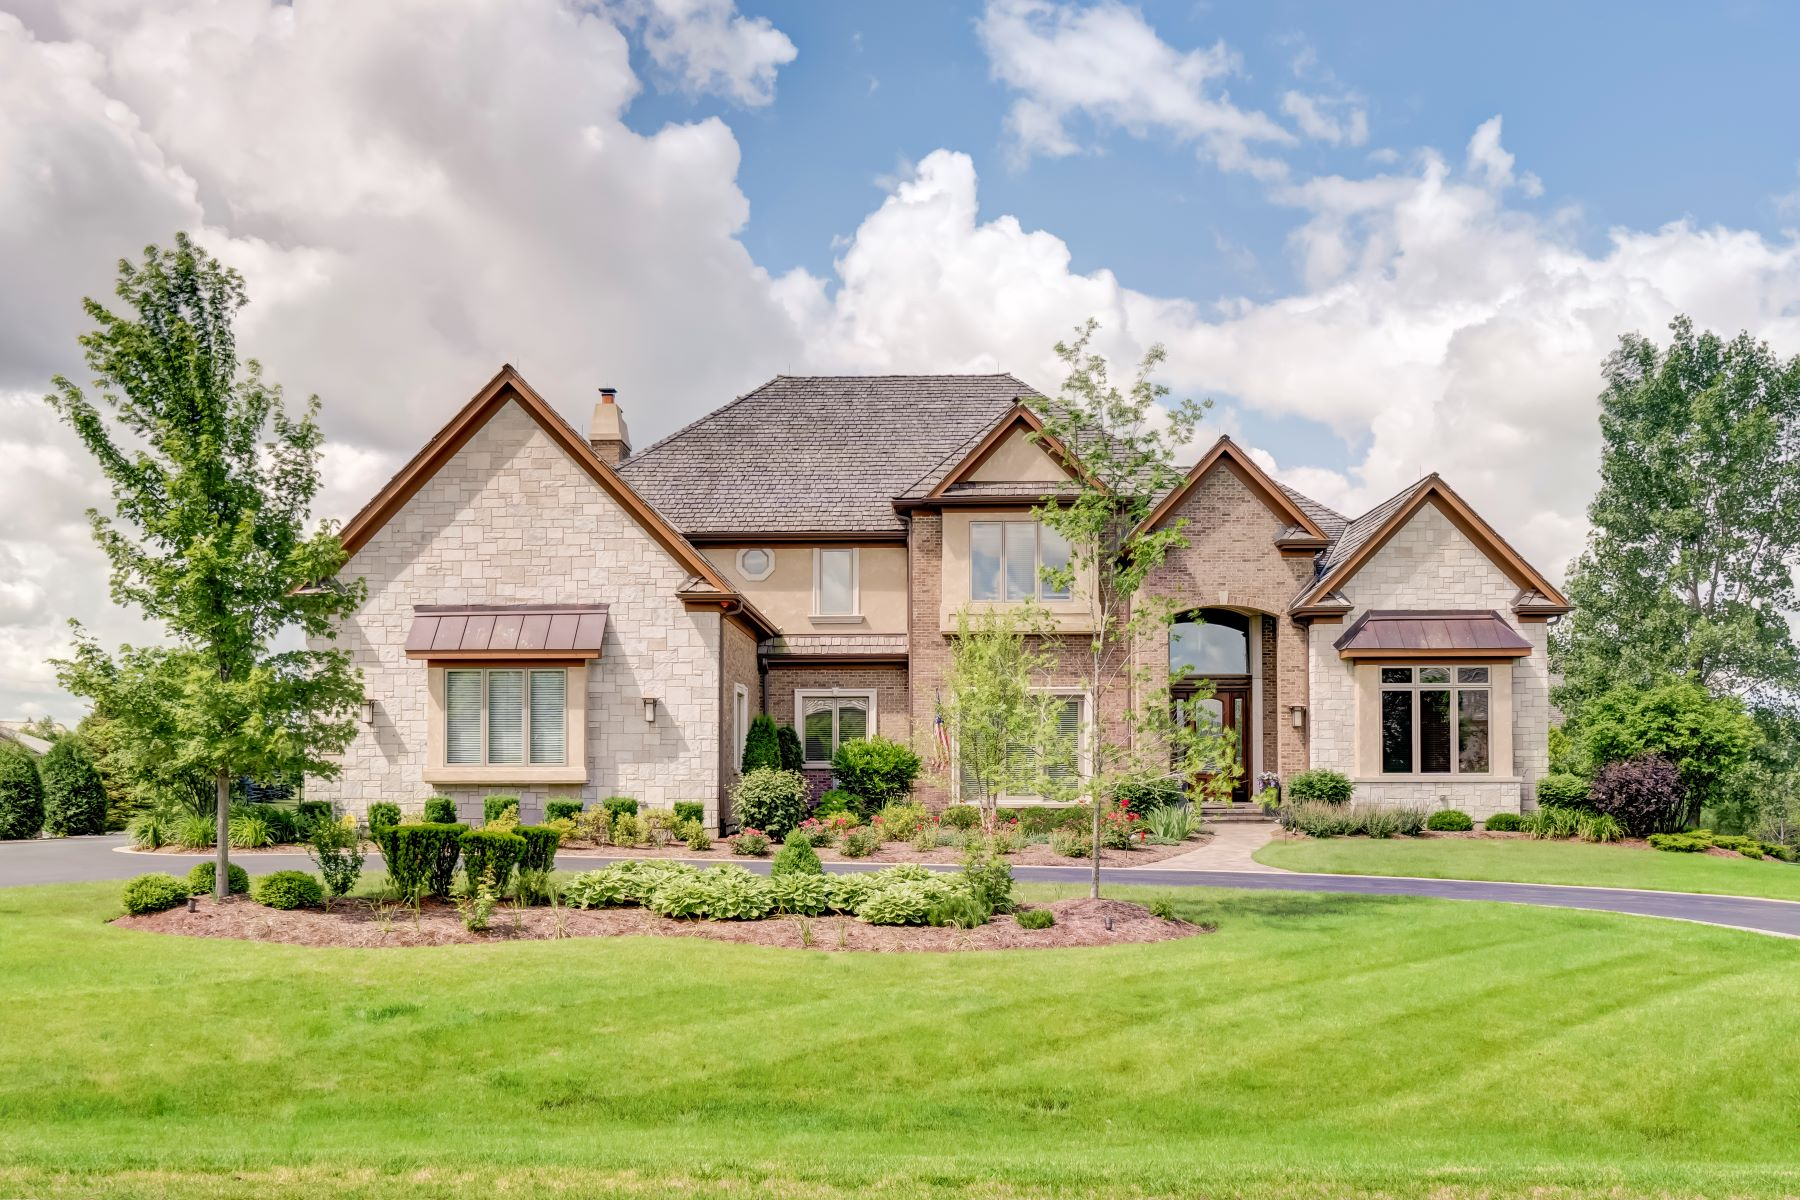 Single Family Homes für Verkauf beim Luxurious Custom Retreat 1220 Macalpin Drive, Barrington, Illinois 60010 Vereinigte Staaten